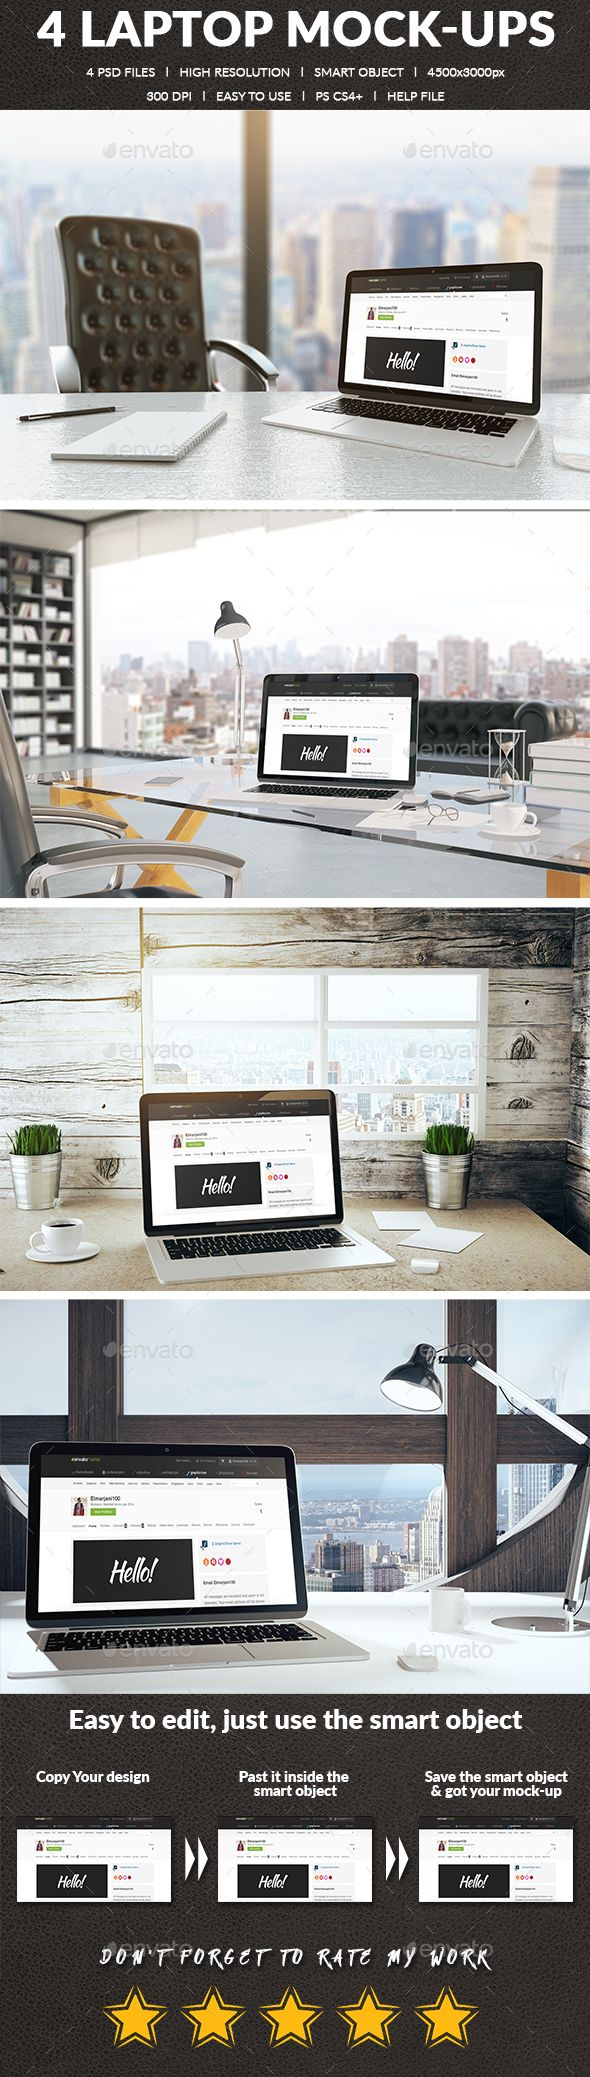 4 Realistic Laptop Mock-ups by Elmarjani100 Realistic Laptop Mock-ups : - 4 PSD files.- High Resolution 300 DPI. - Smart Object. - Size : 4500×3000px. - Easy to use. Note :